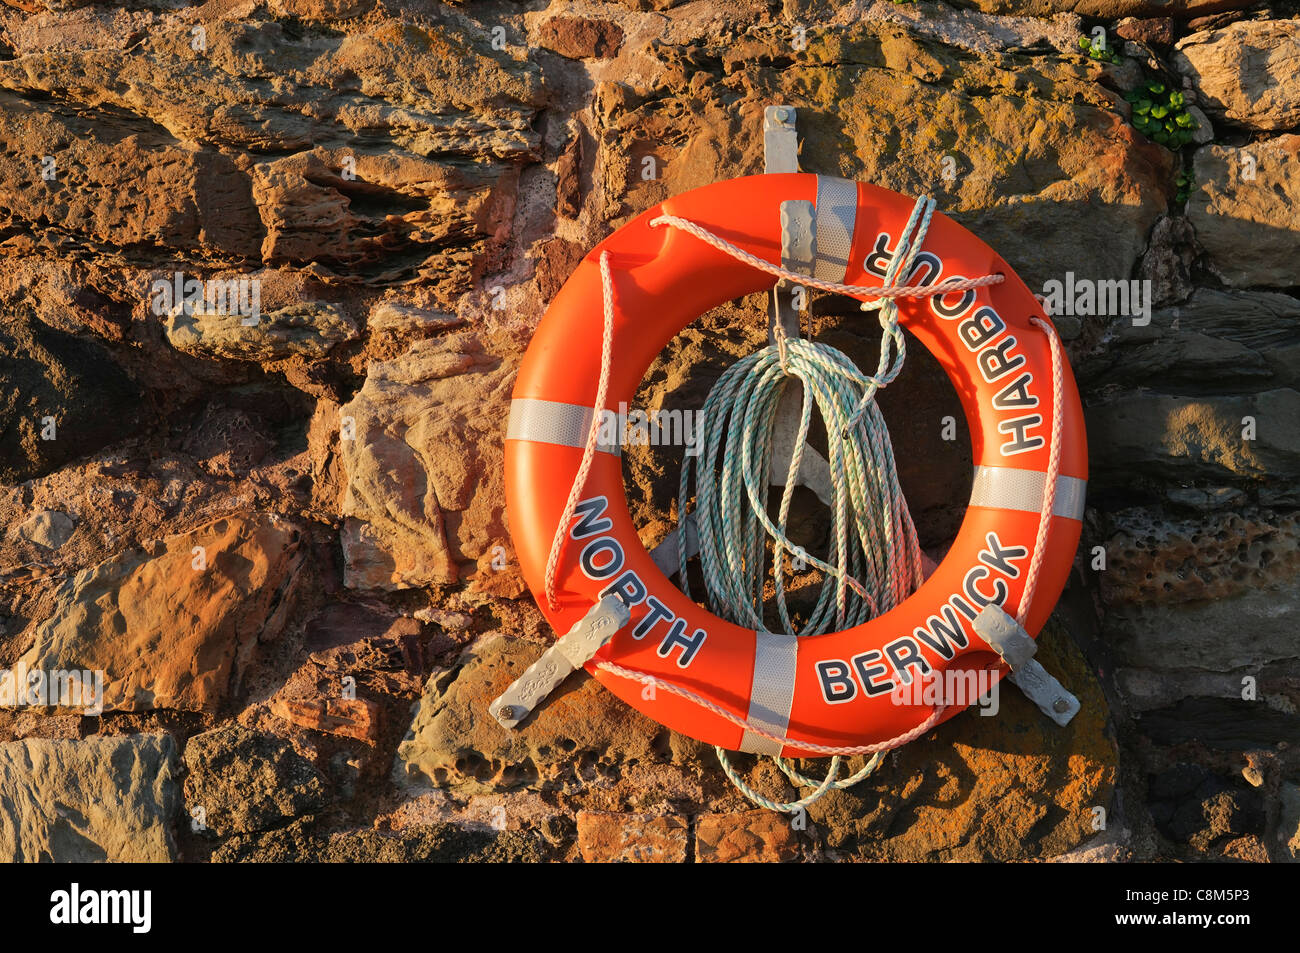 Orange lifebelt (sometimes called a lifebuoy) at the harbour in North Berwick, East Lothian, Scotland. - Stock Image